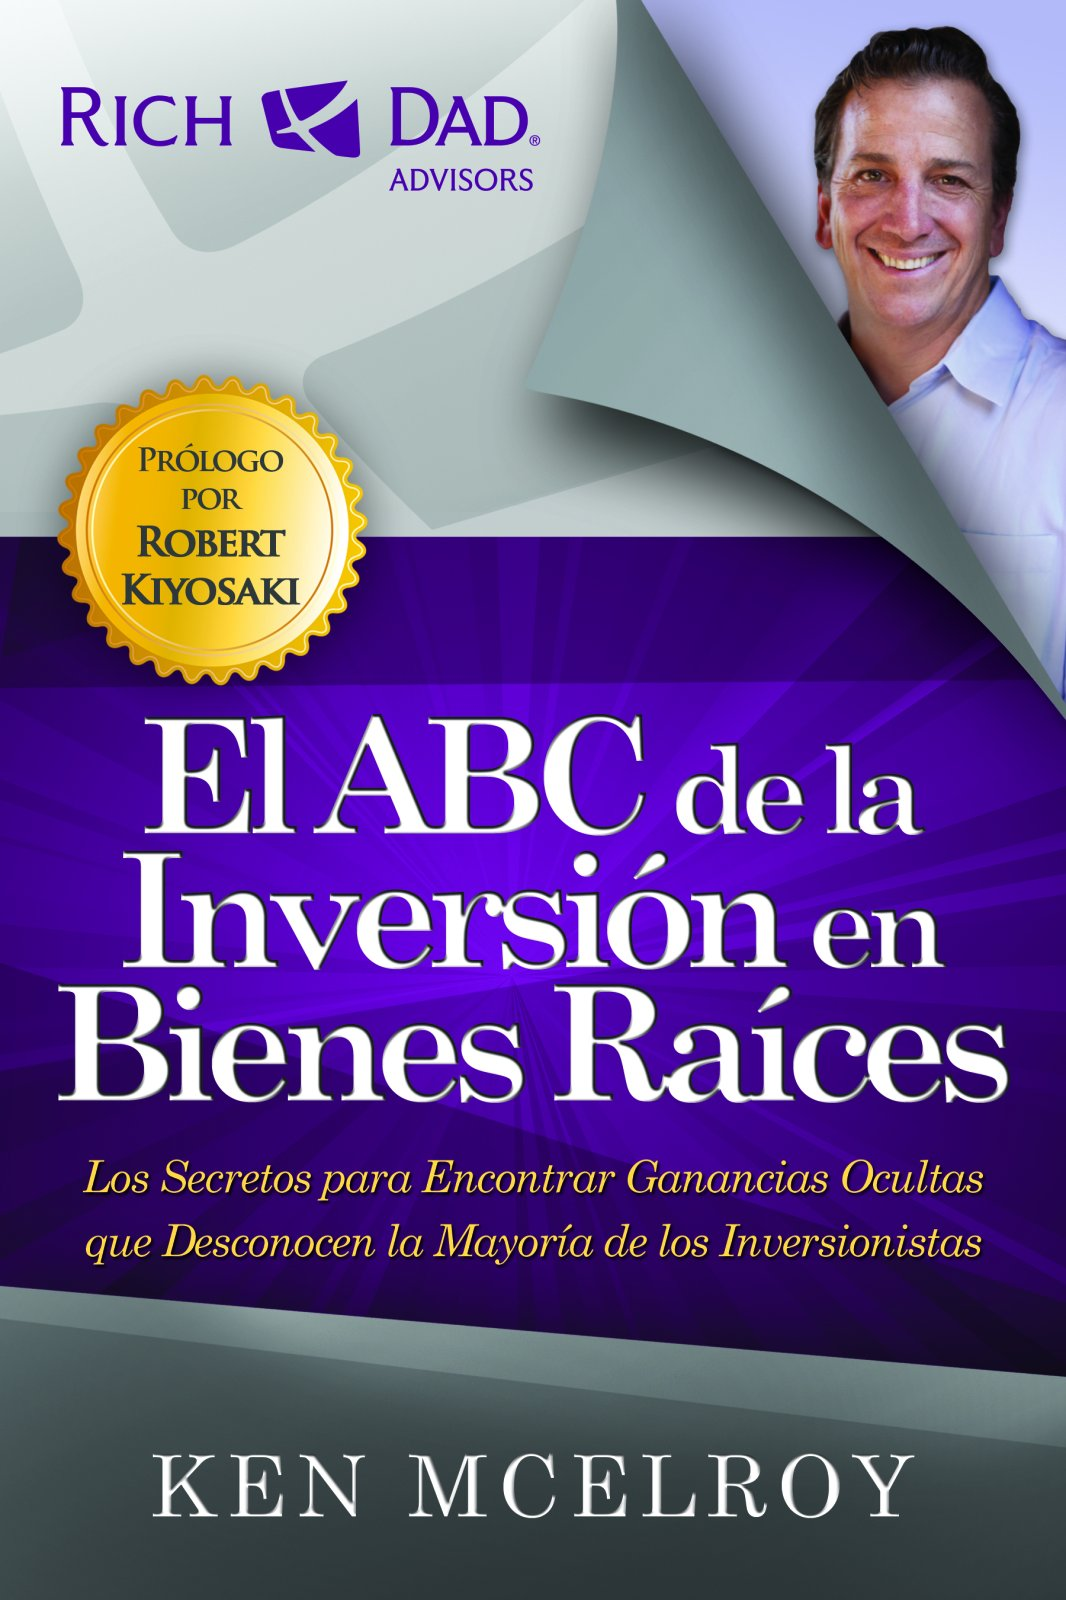 El ABC de la Inversion en Bienes Raices (Spanish Edition) by RDA Press, LLC